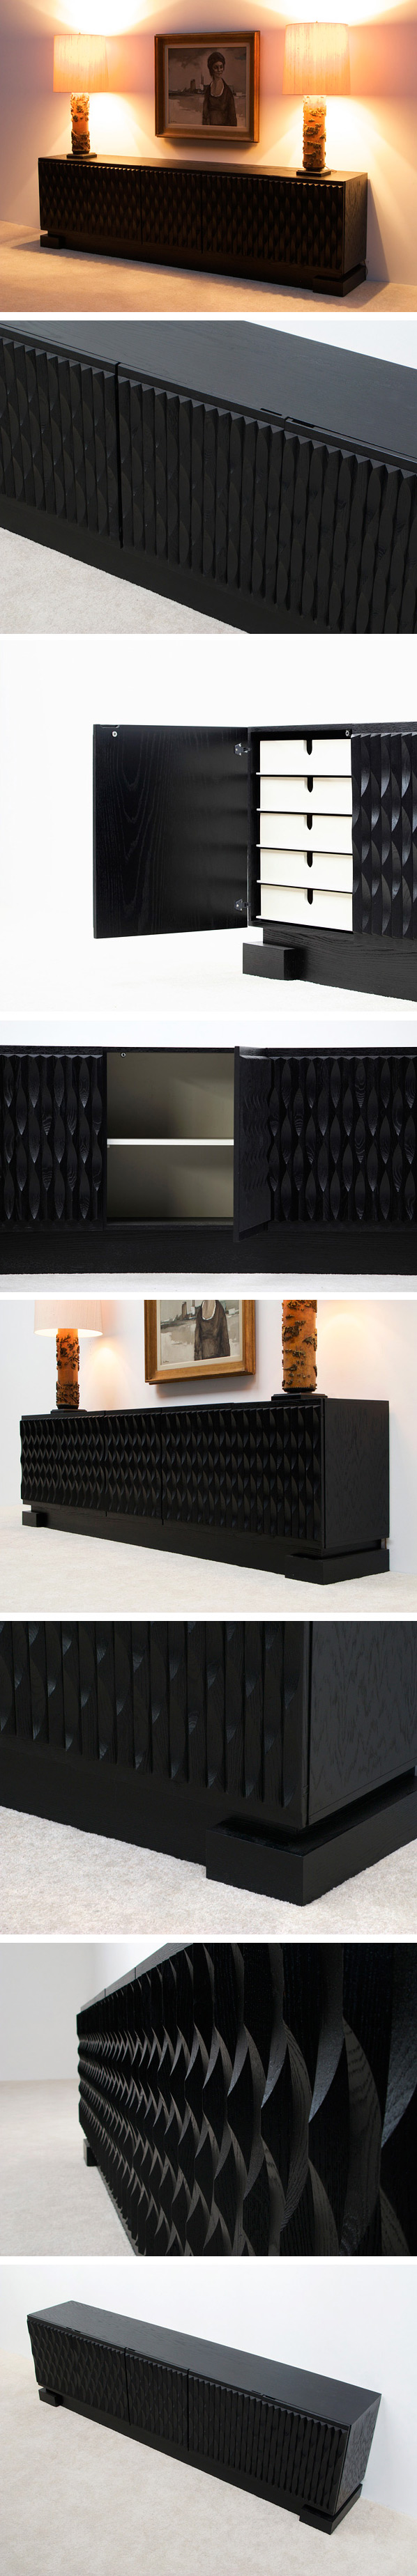 Black ebonized large graphic modern sideboard Belgium made Large